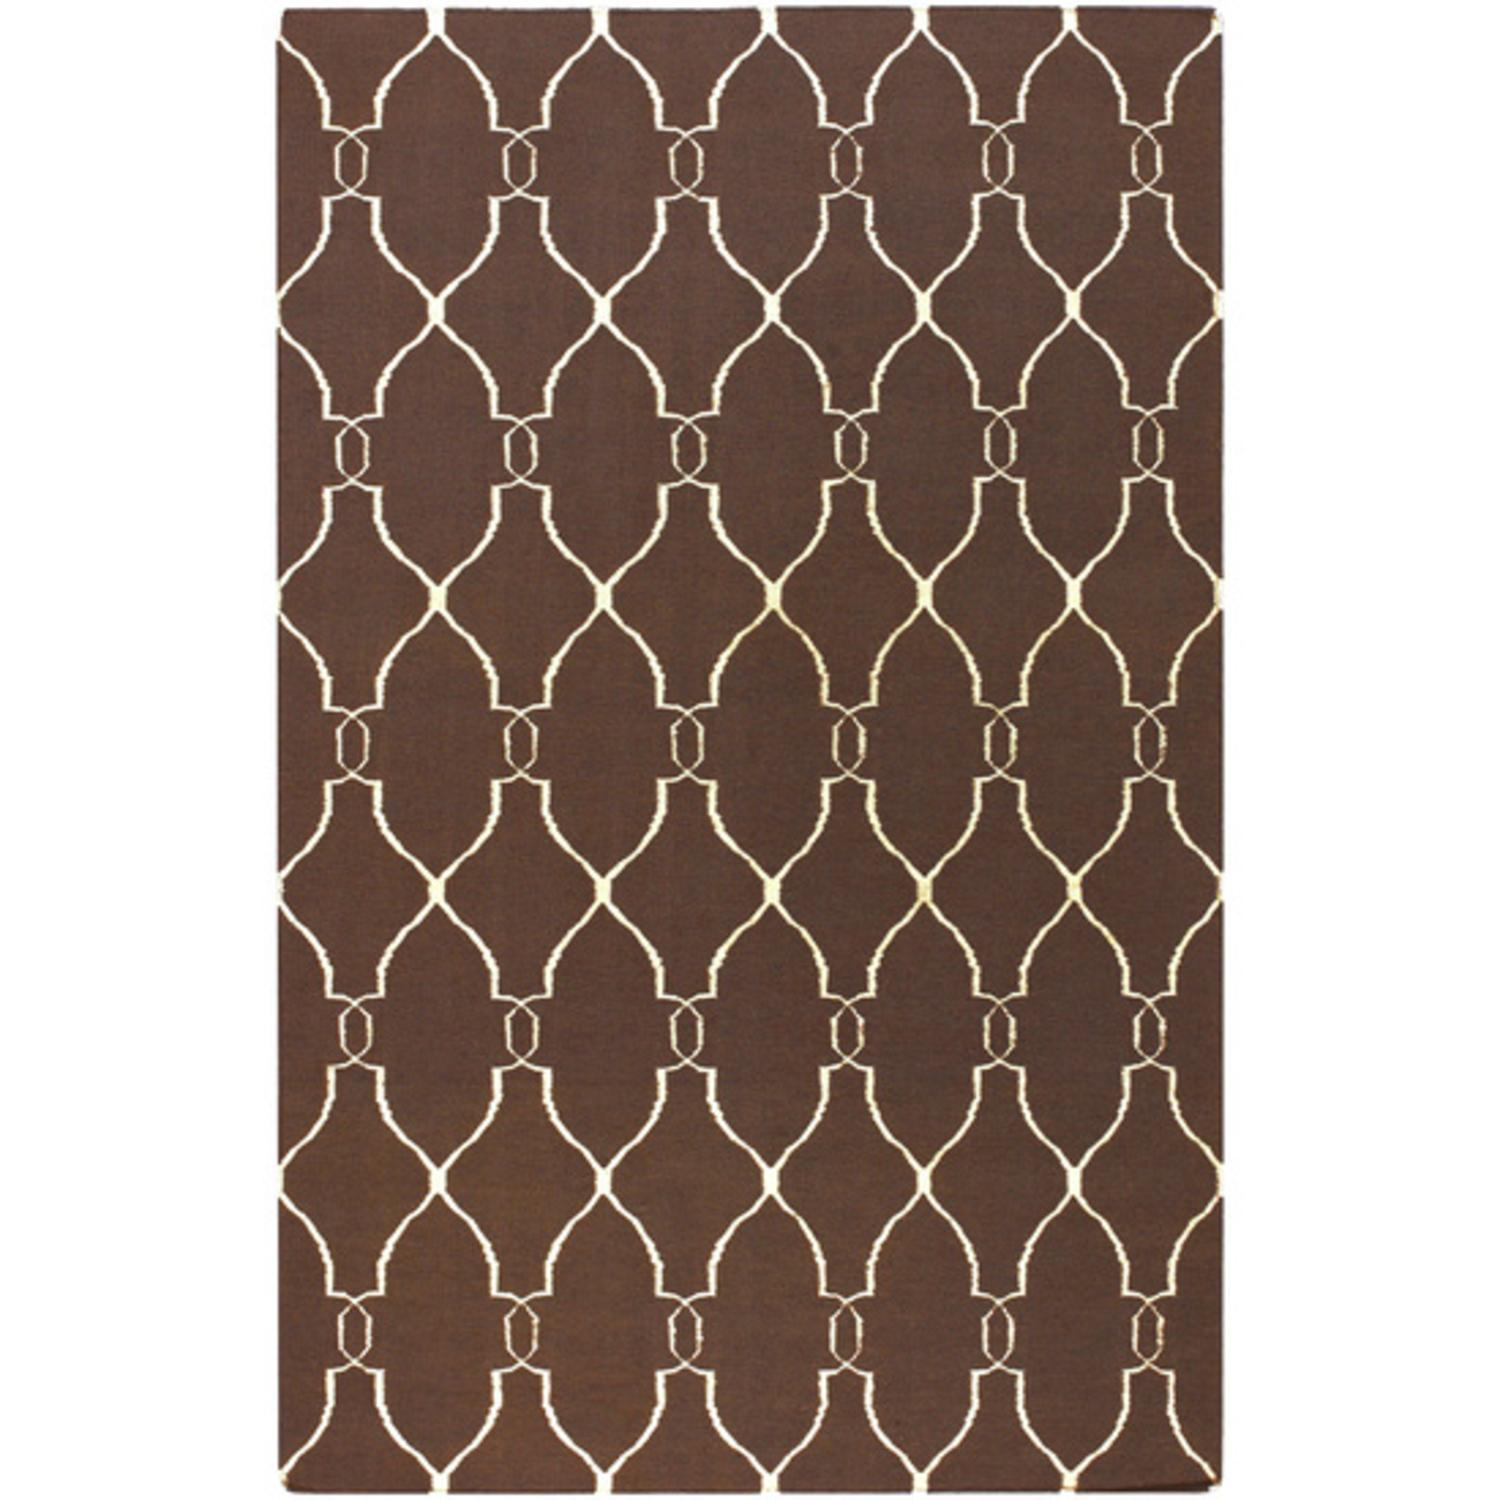 2' x 3' Forest Life Ivory and Brown Hand Woven Wool Area Throw Rug